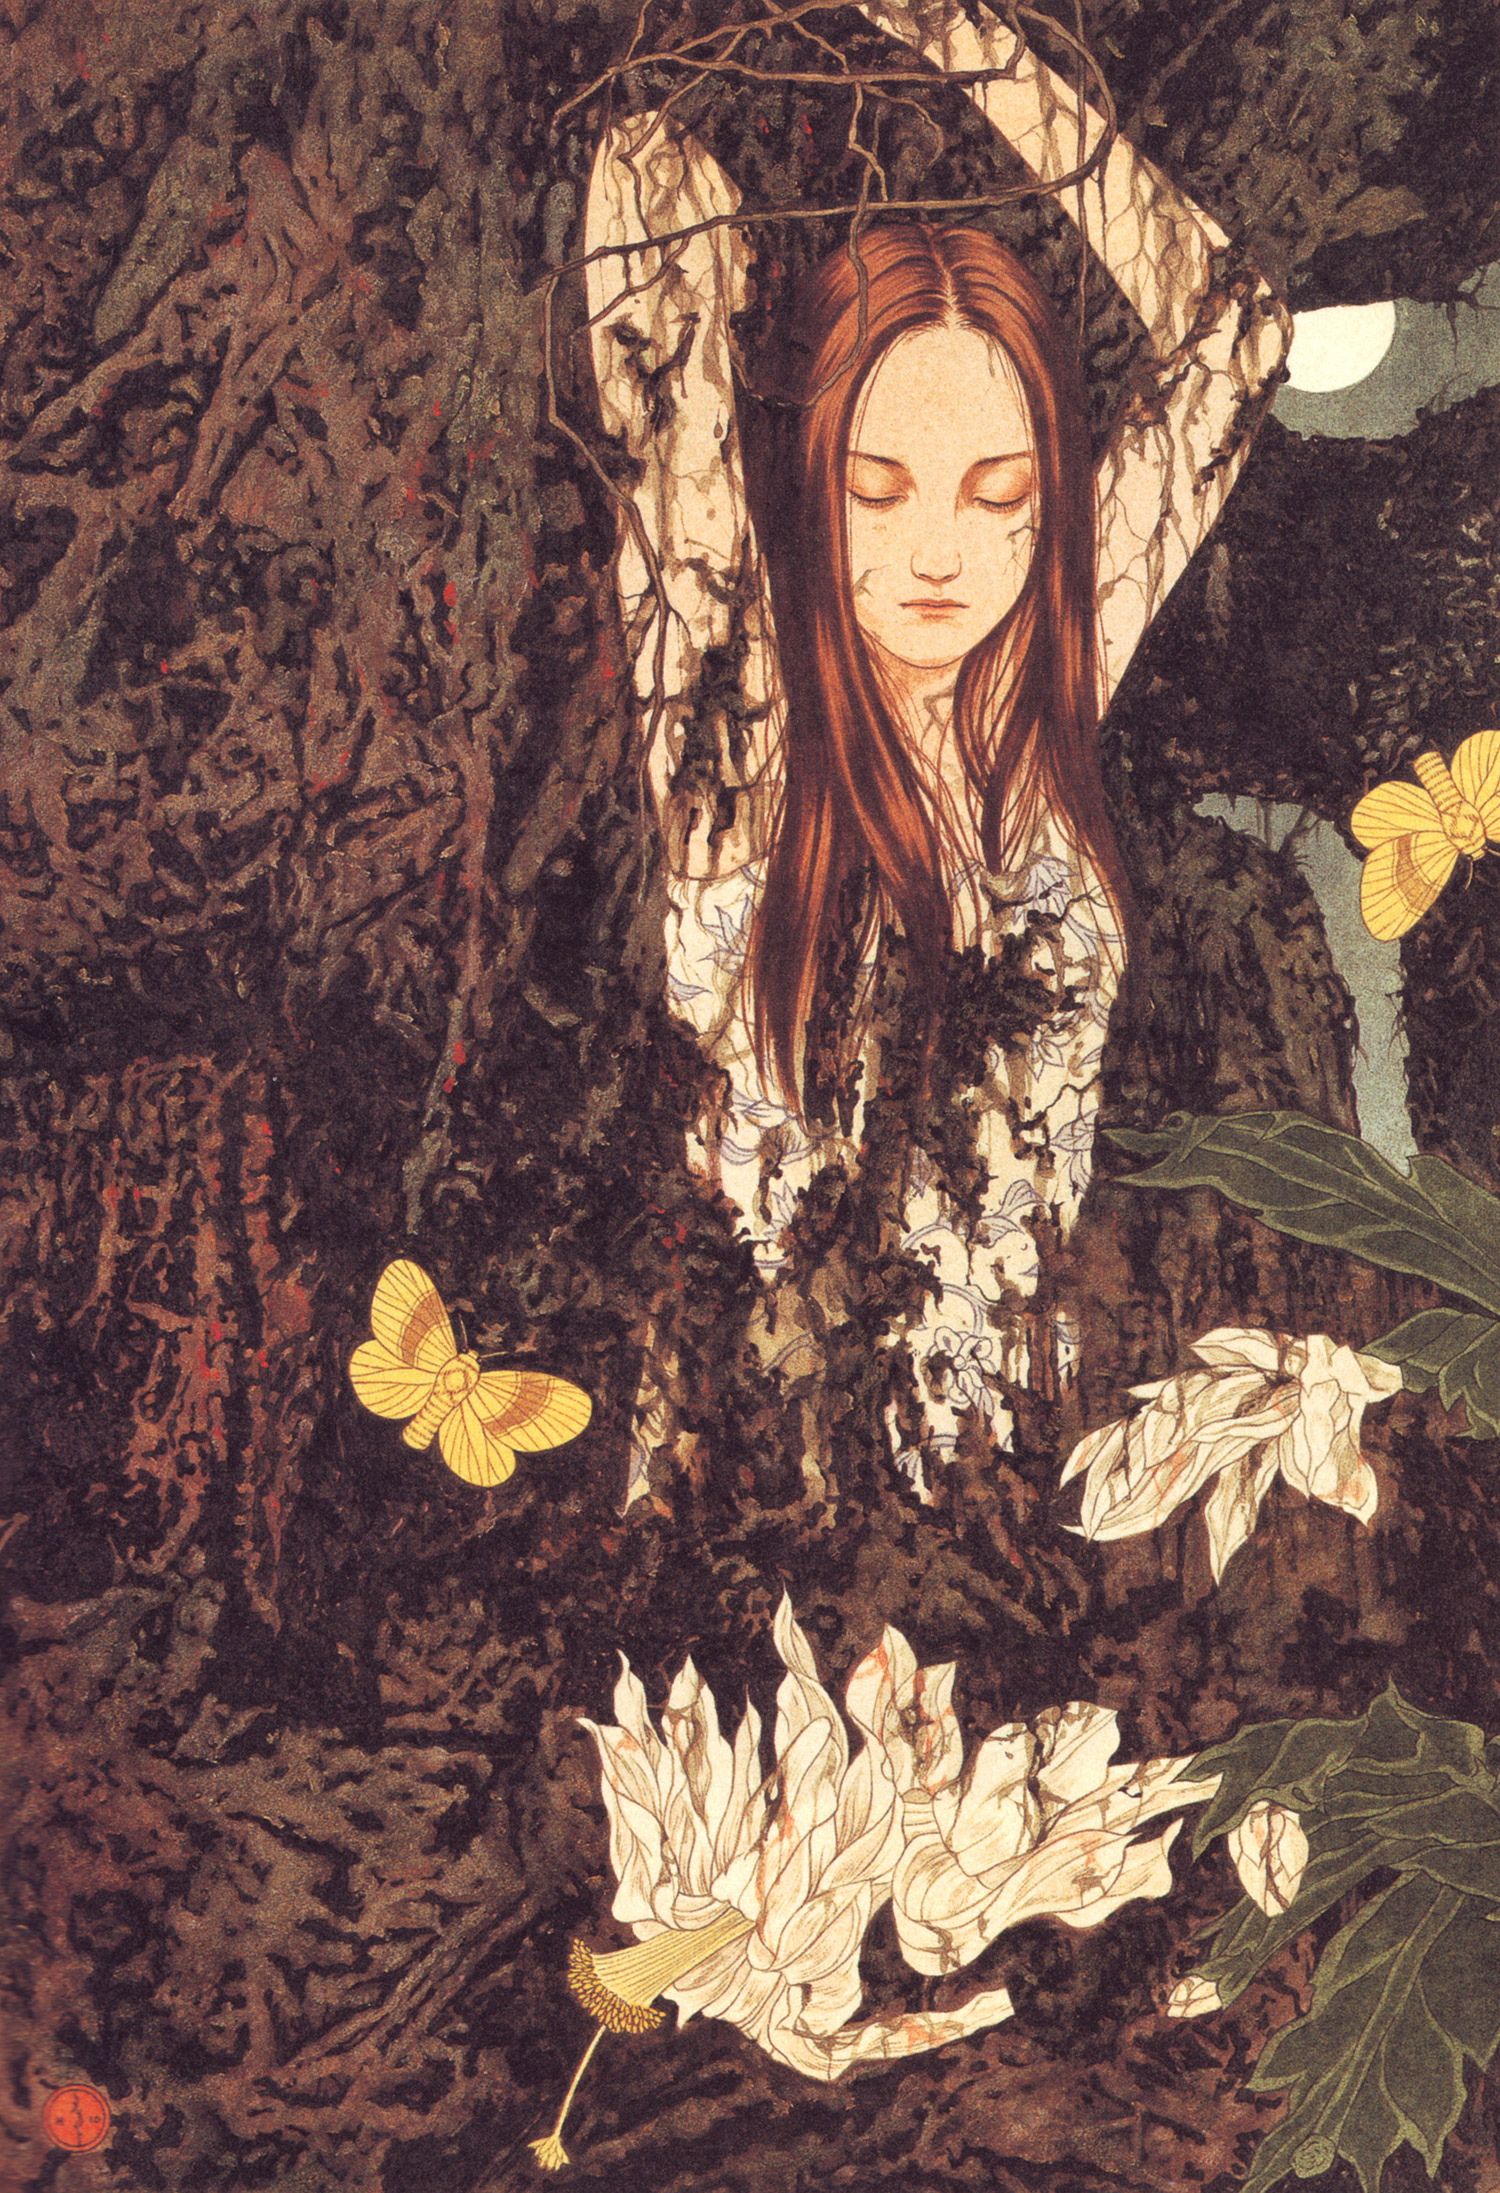 Takato Yamamoto - woman in branches